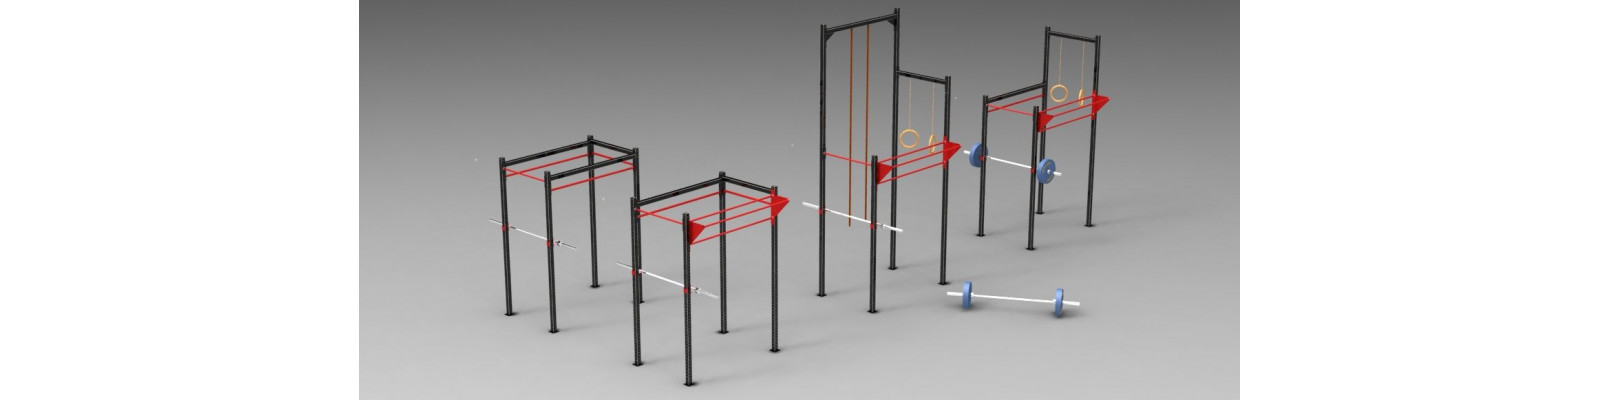 Cross fit rigs for Home Use